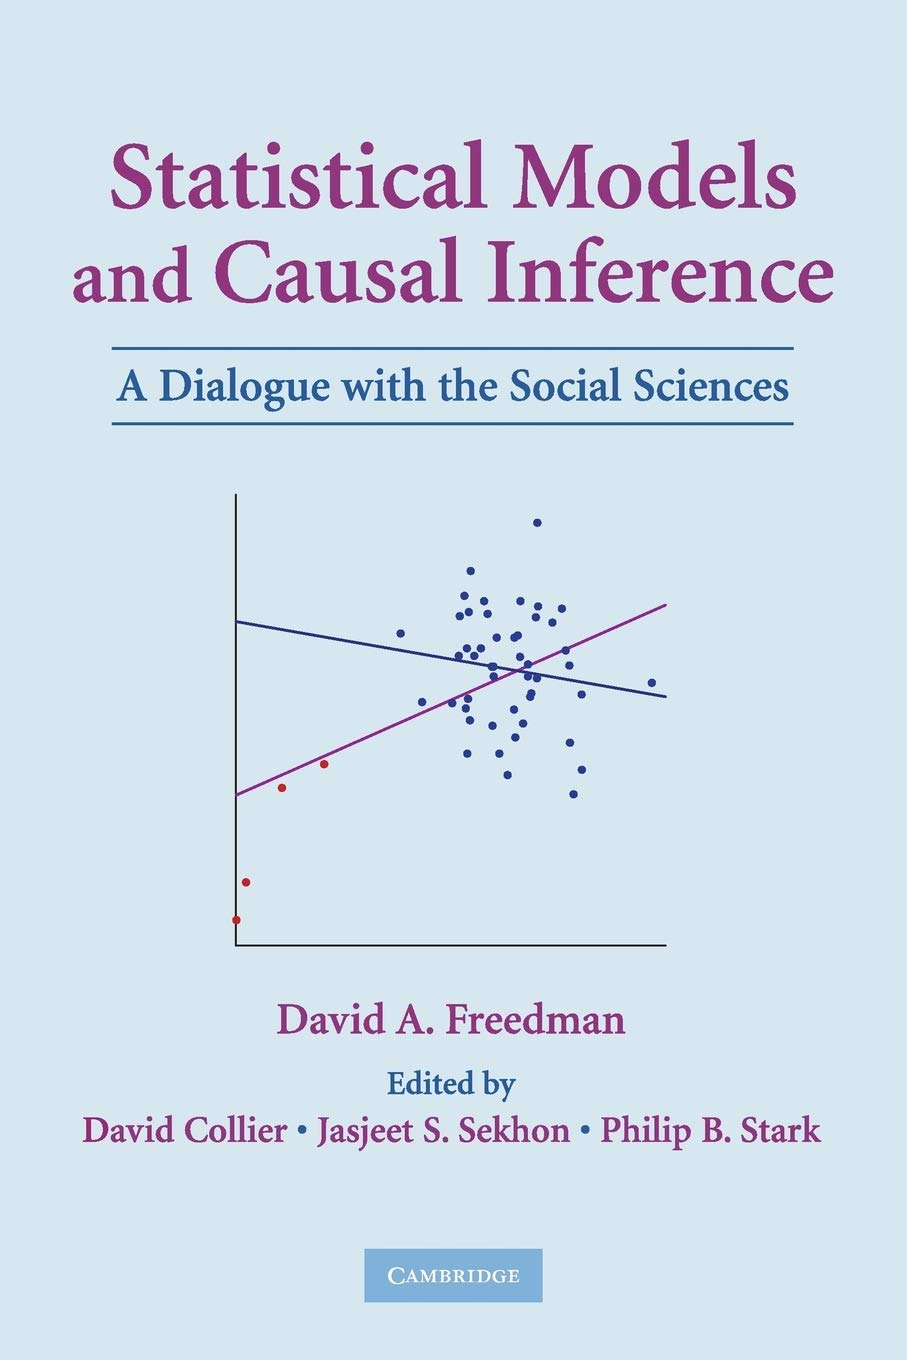 Statistical Models and Causal Inference: A Dialogue with the Social  Sciences: Amazon.co.uk: Freedman, David A.: 9780521123907: Books